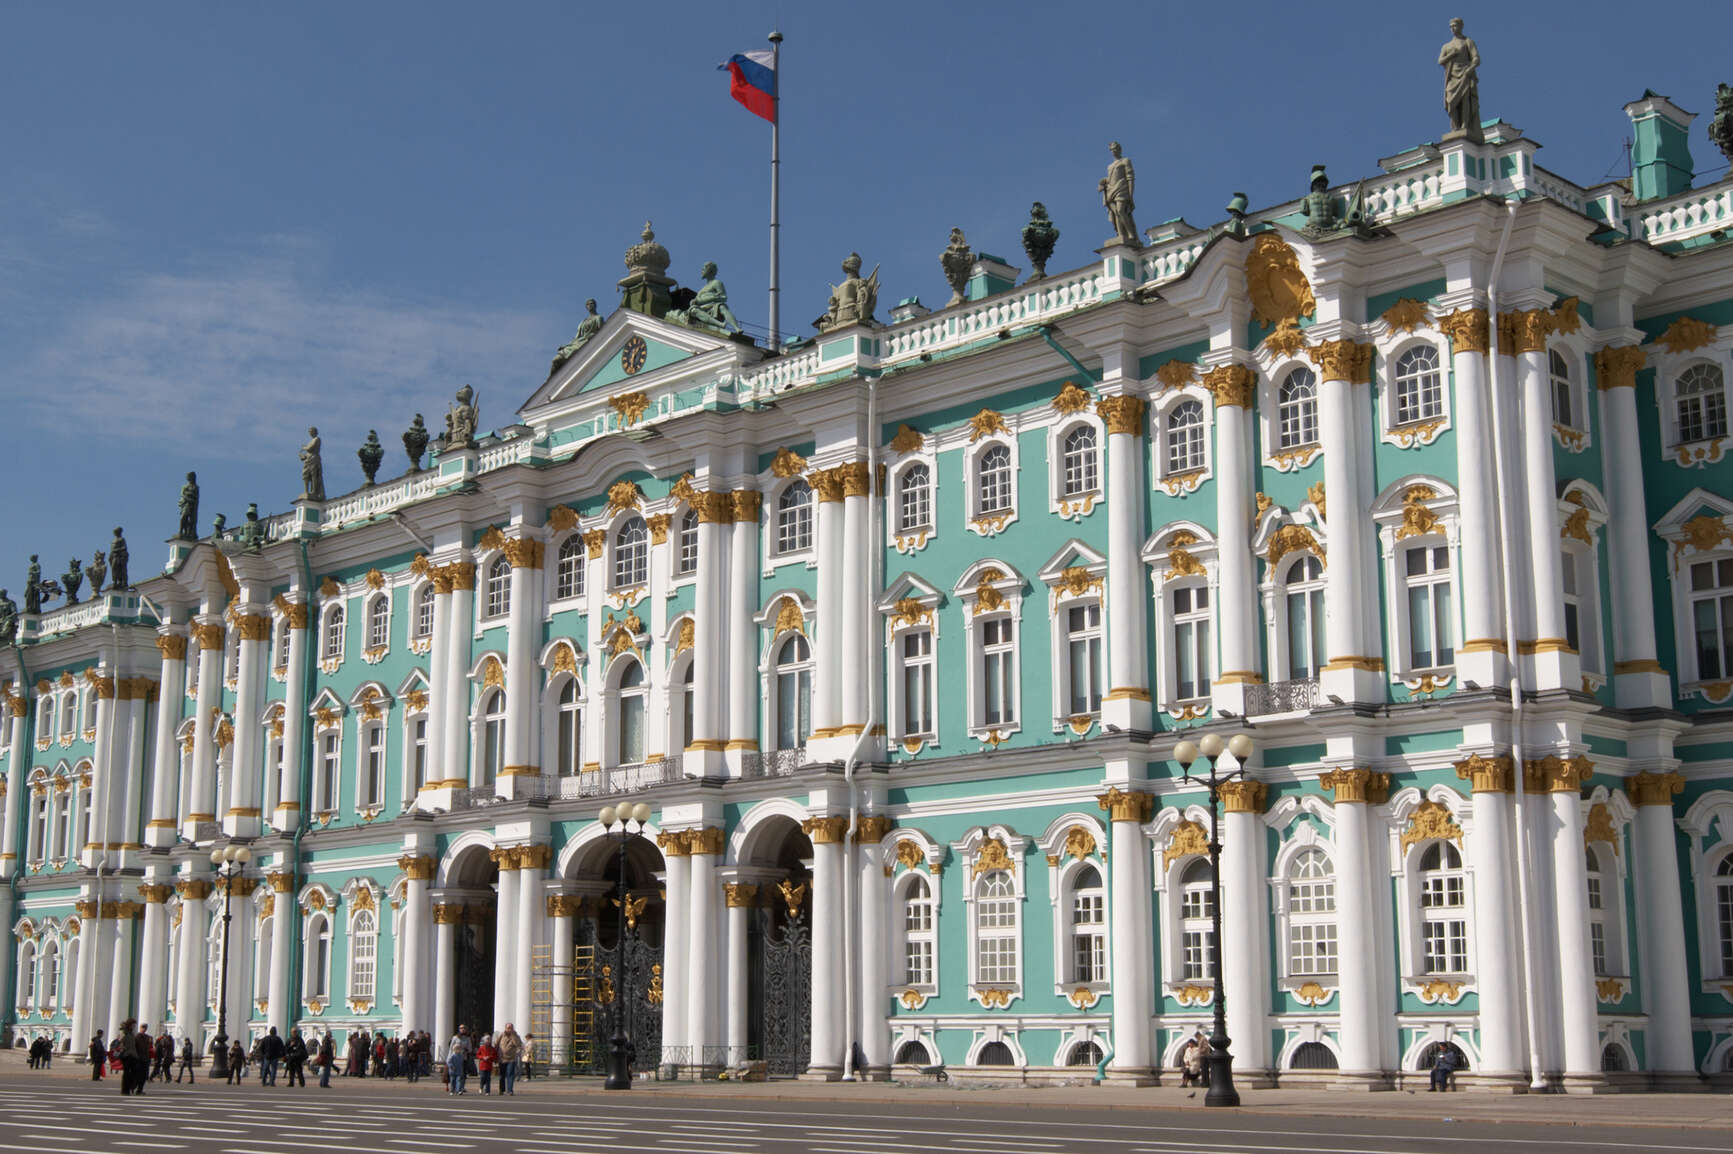 Housed in the winter palace, State Hermitage Museum